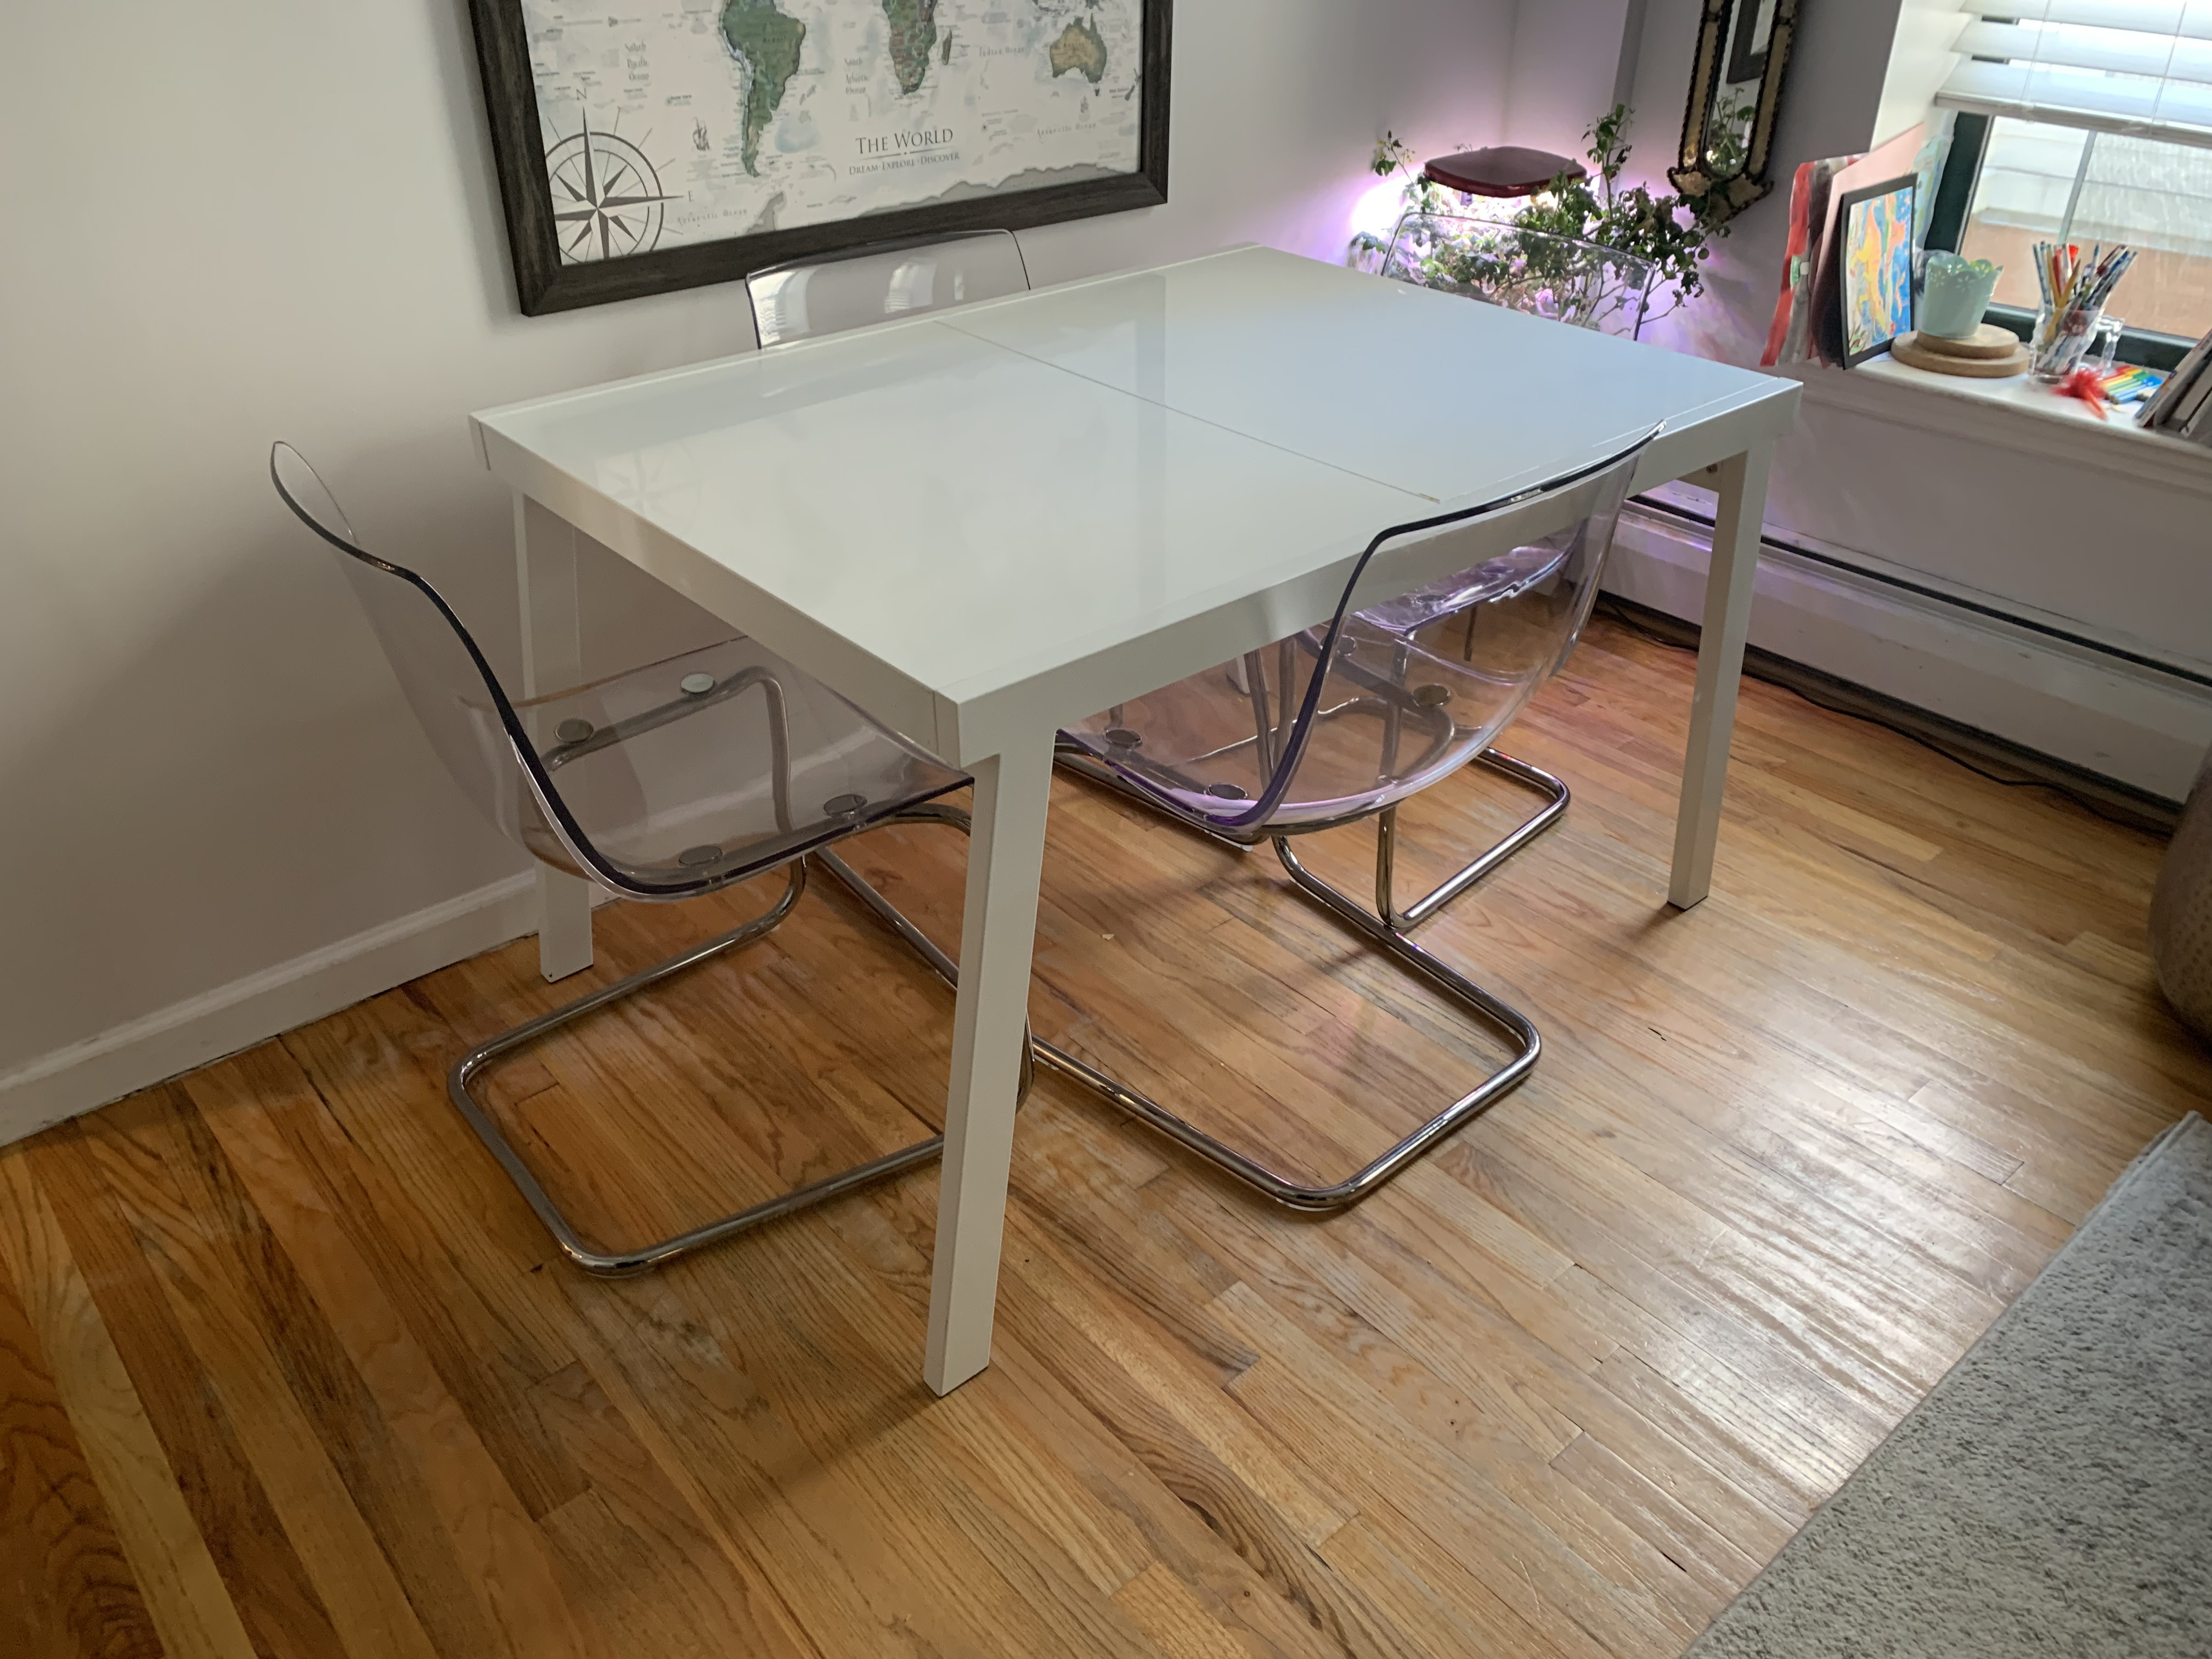 CB2 White Lacquer Extension Dining Table w/ Built in Leaf